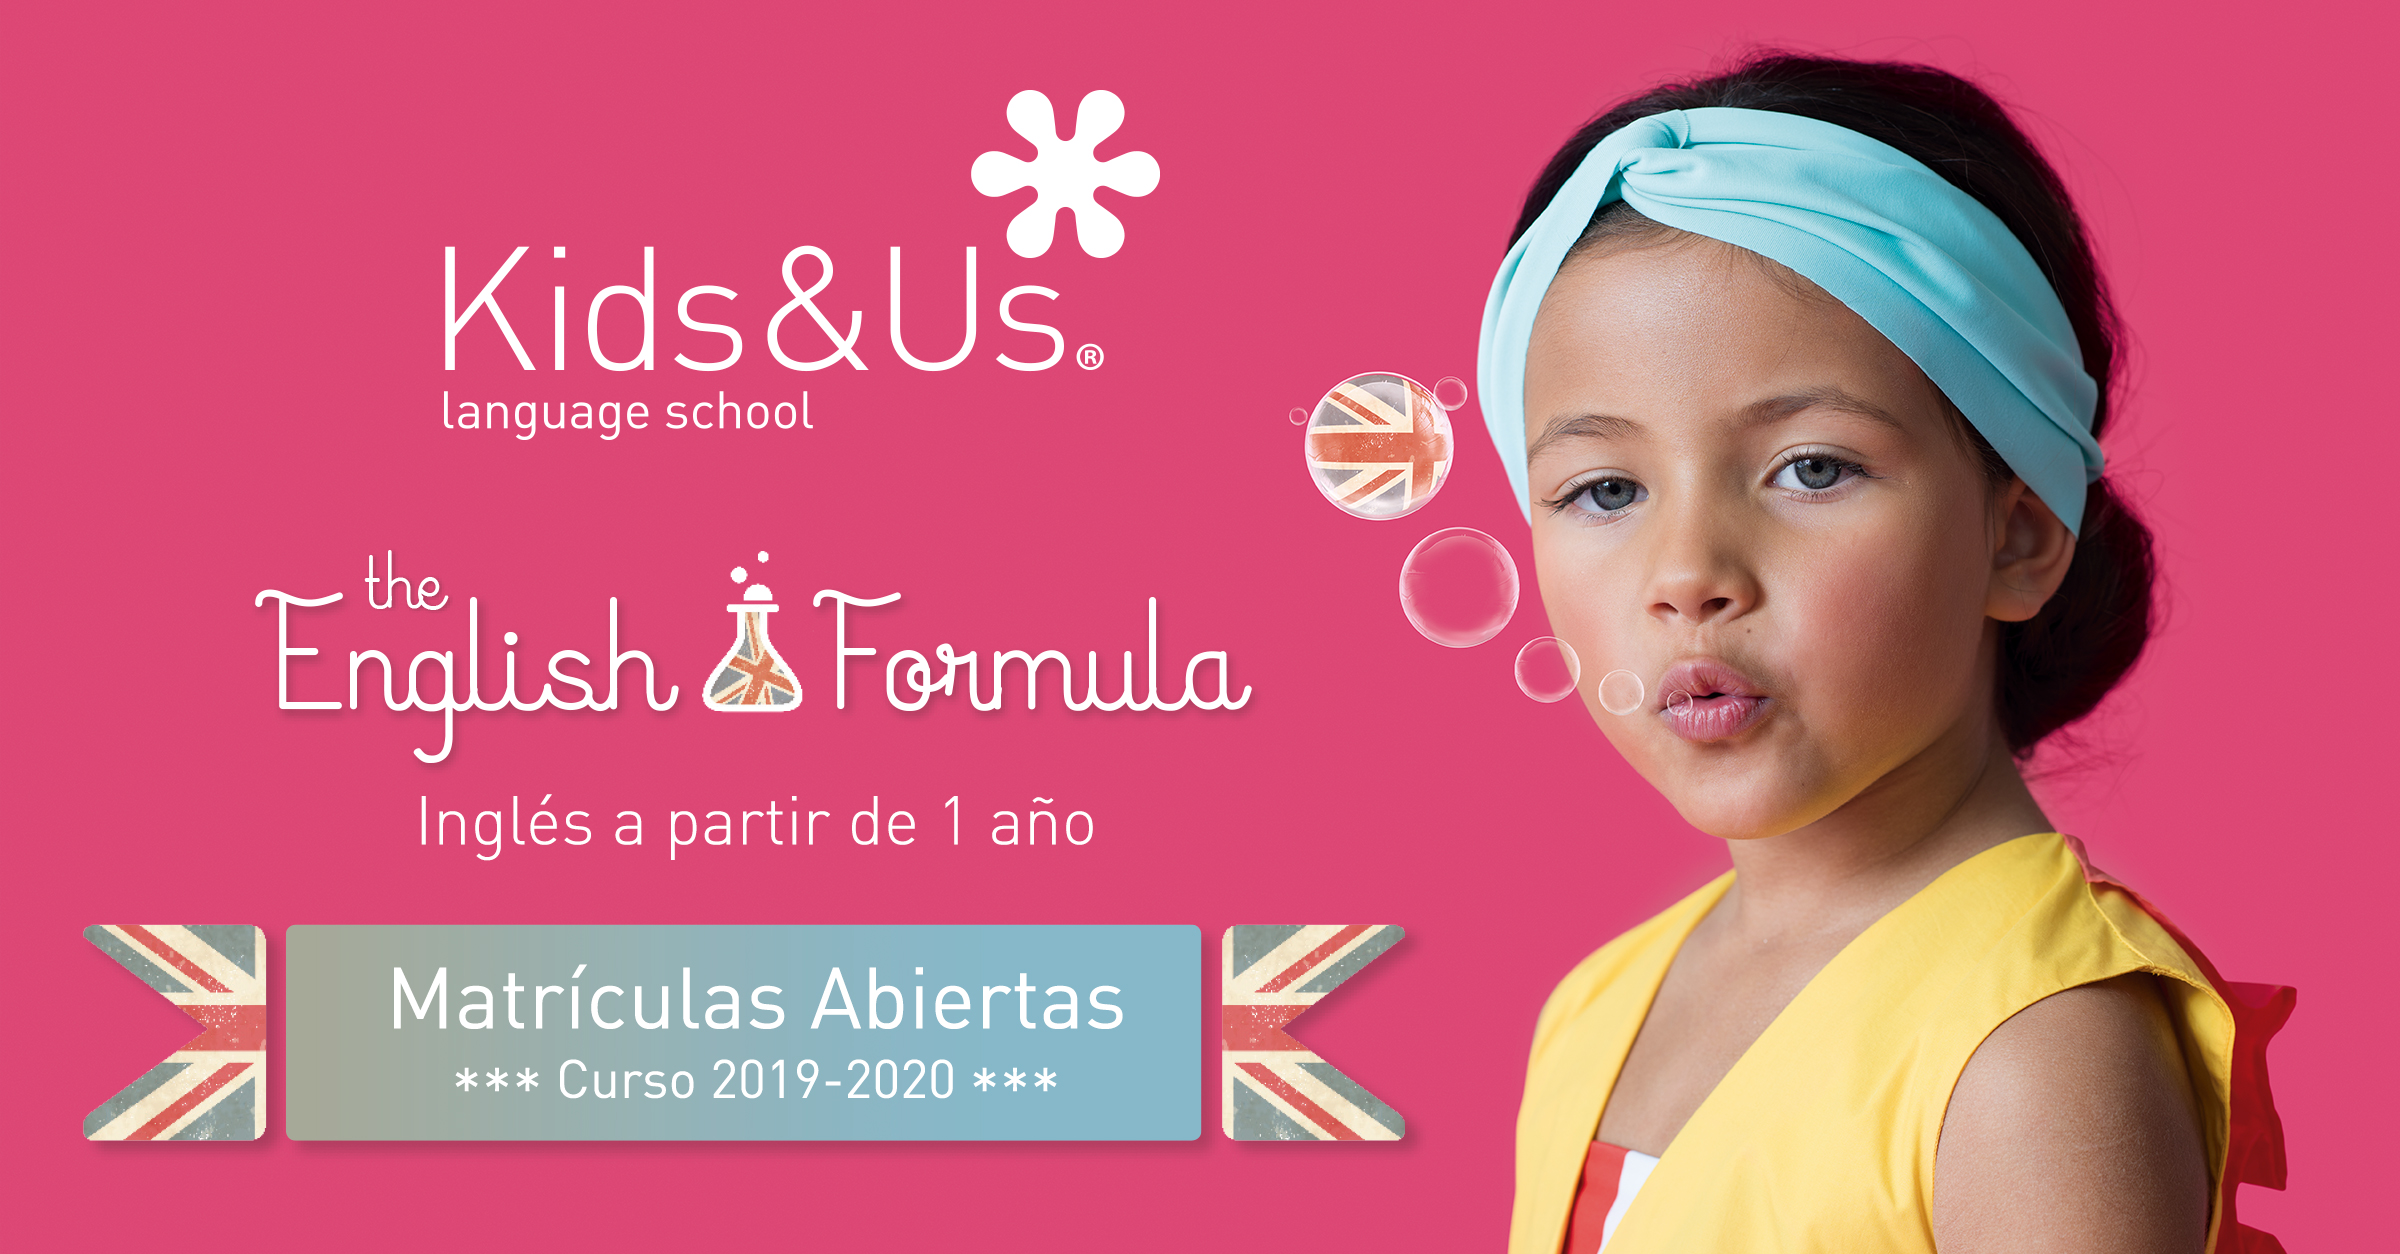 Kids and Us, school of english, una metodología para aprender inglés desde bebés